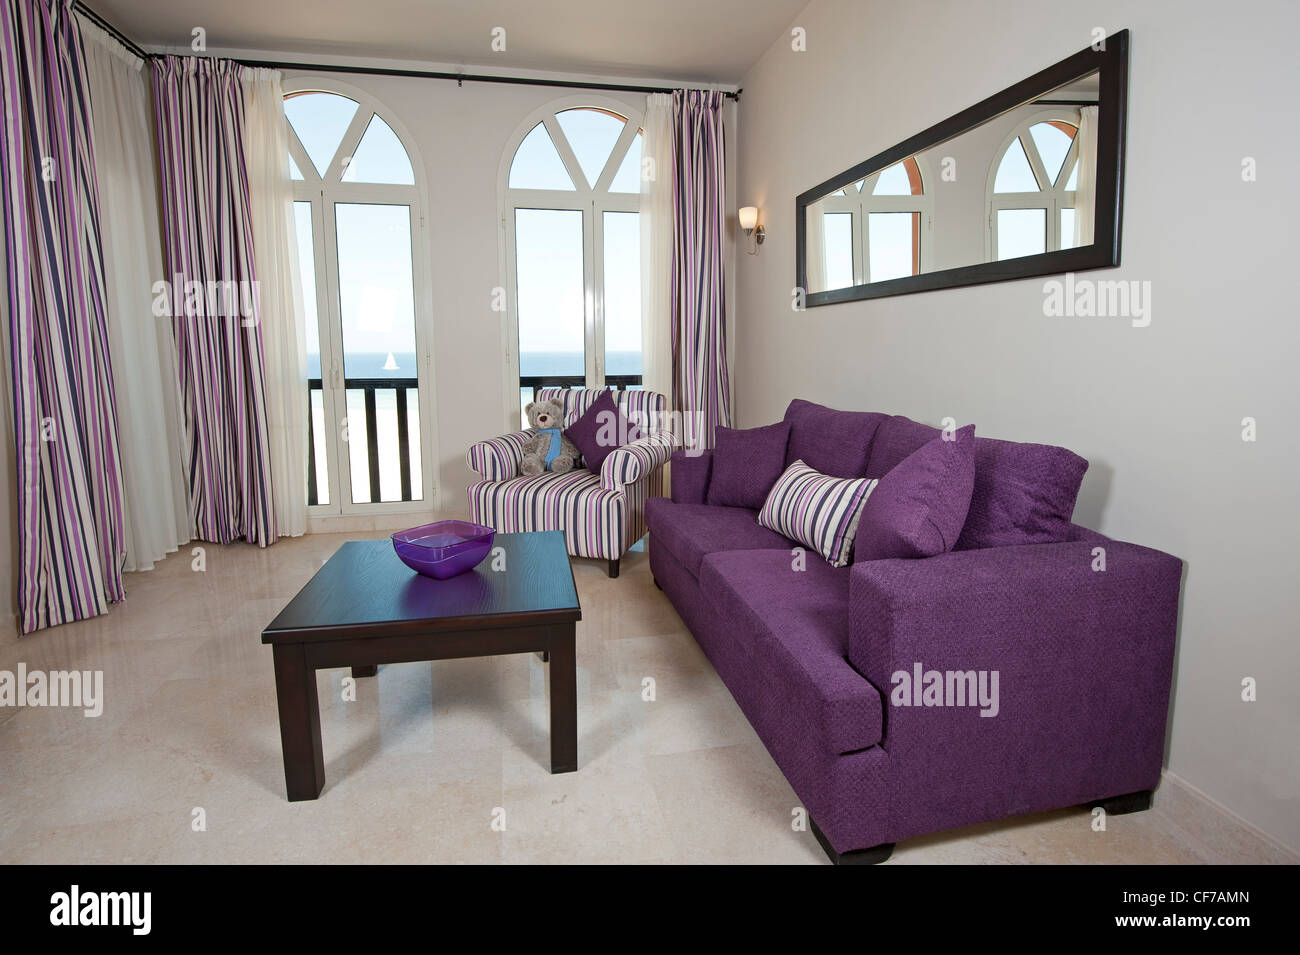 Interior design of a luxury apartment living room with a sea view - Stock Image